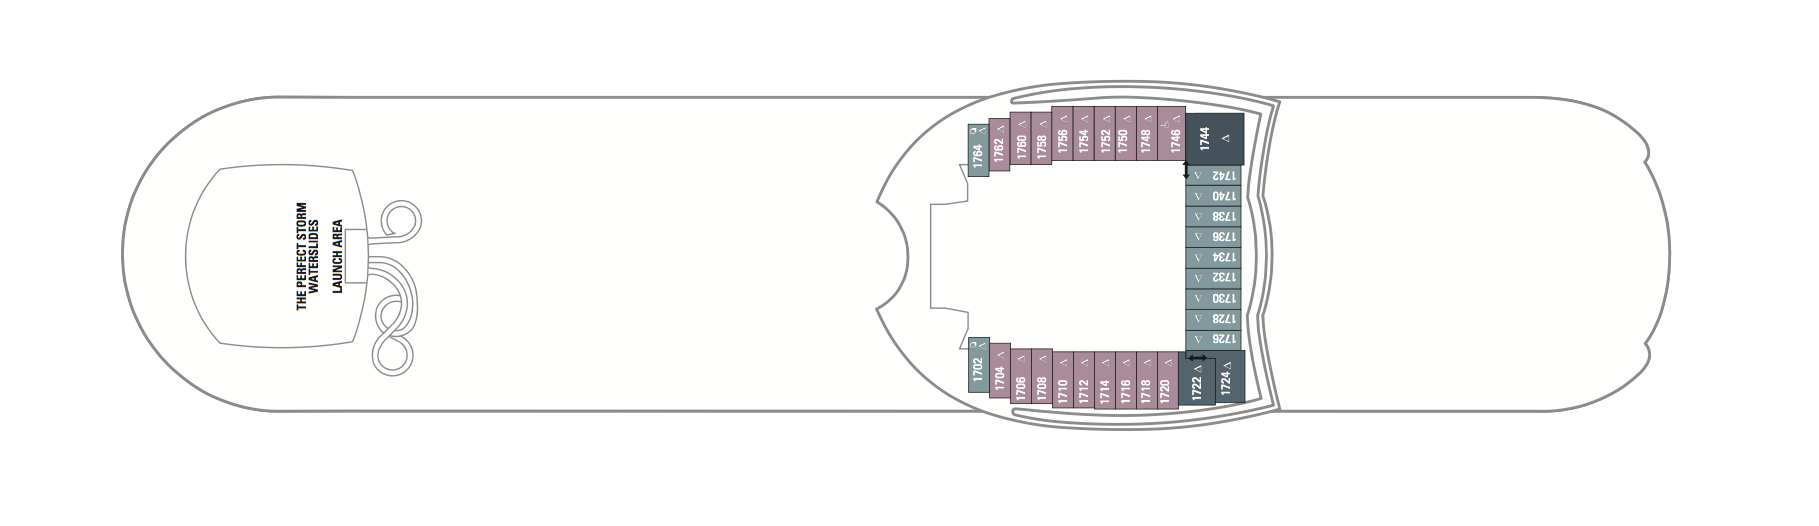 Royal Caribbean International Symphony of the Seas Deck Plans Deck 18.png